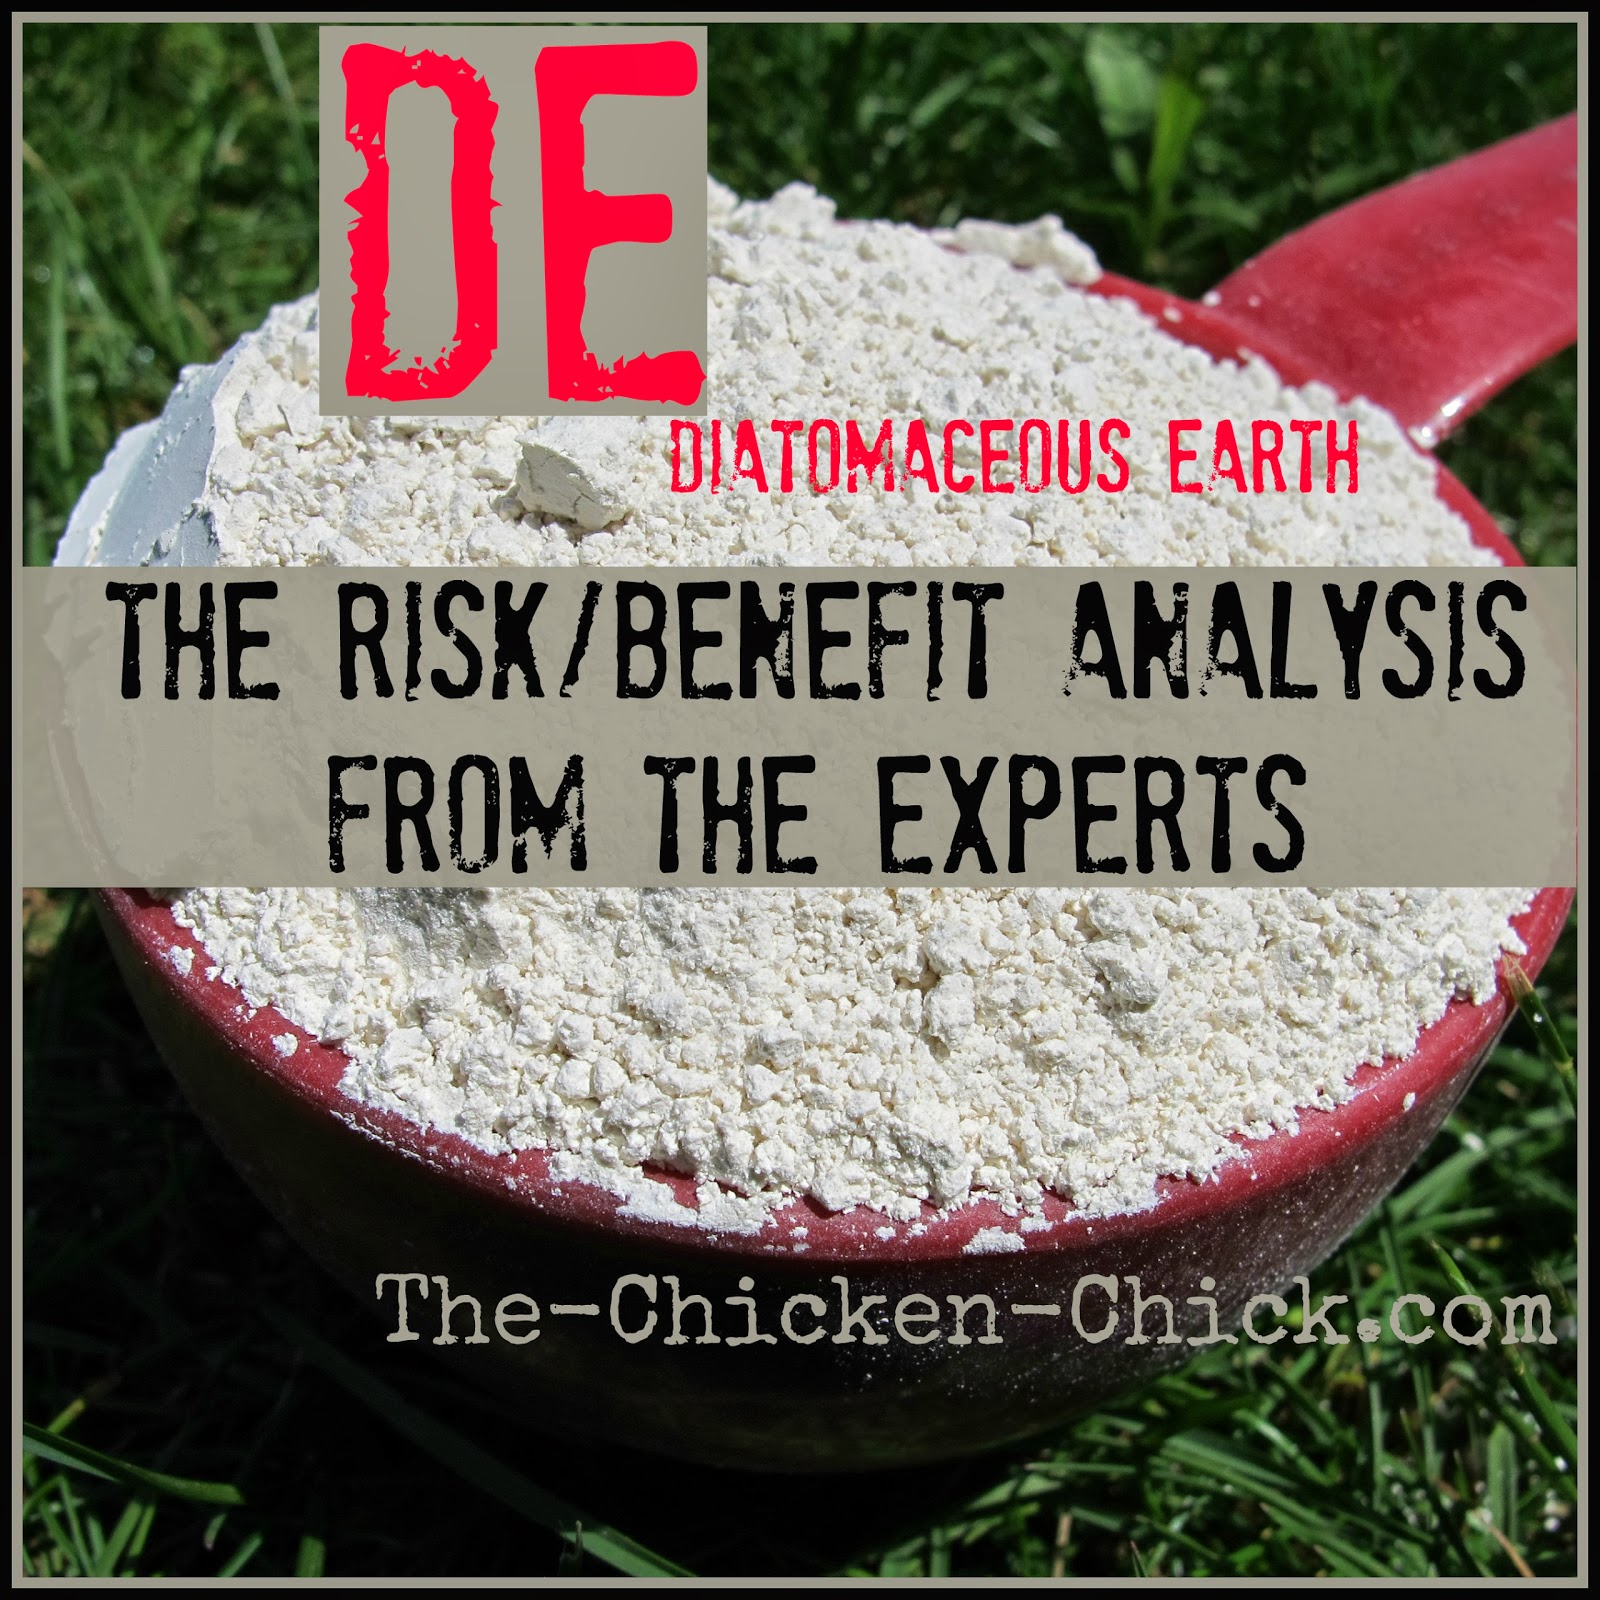 The chicken chick diatomaceous earth de the benefit - How to use diatomaceous earth in the garden ...